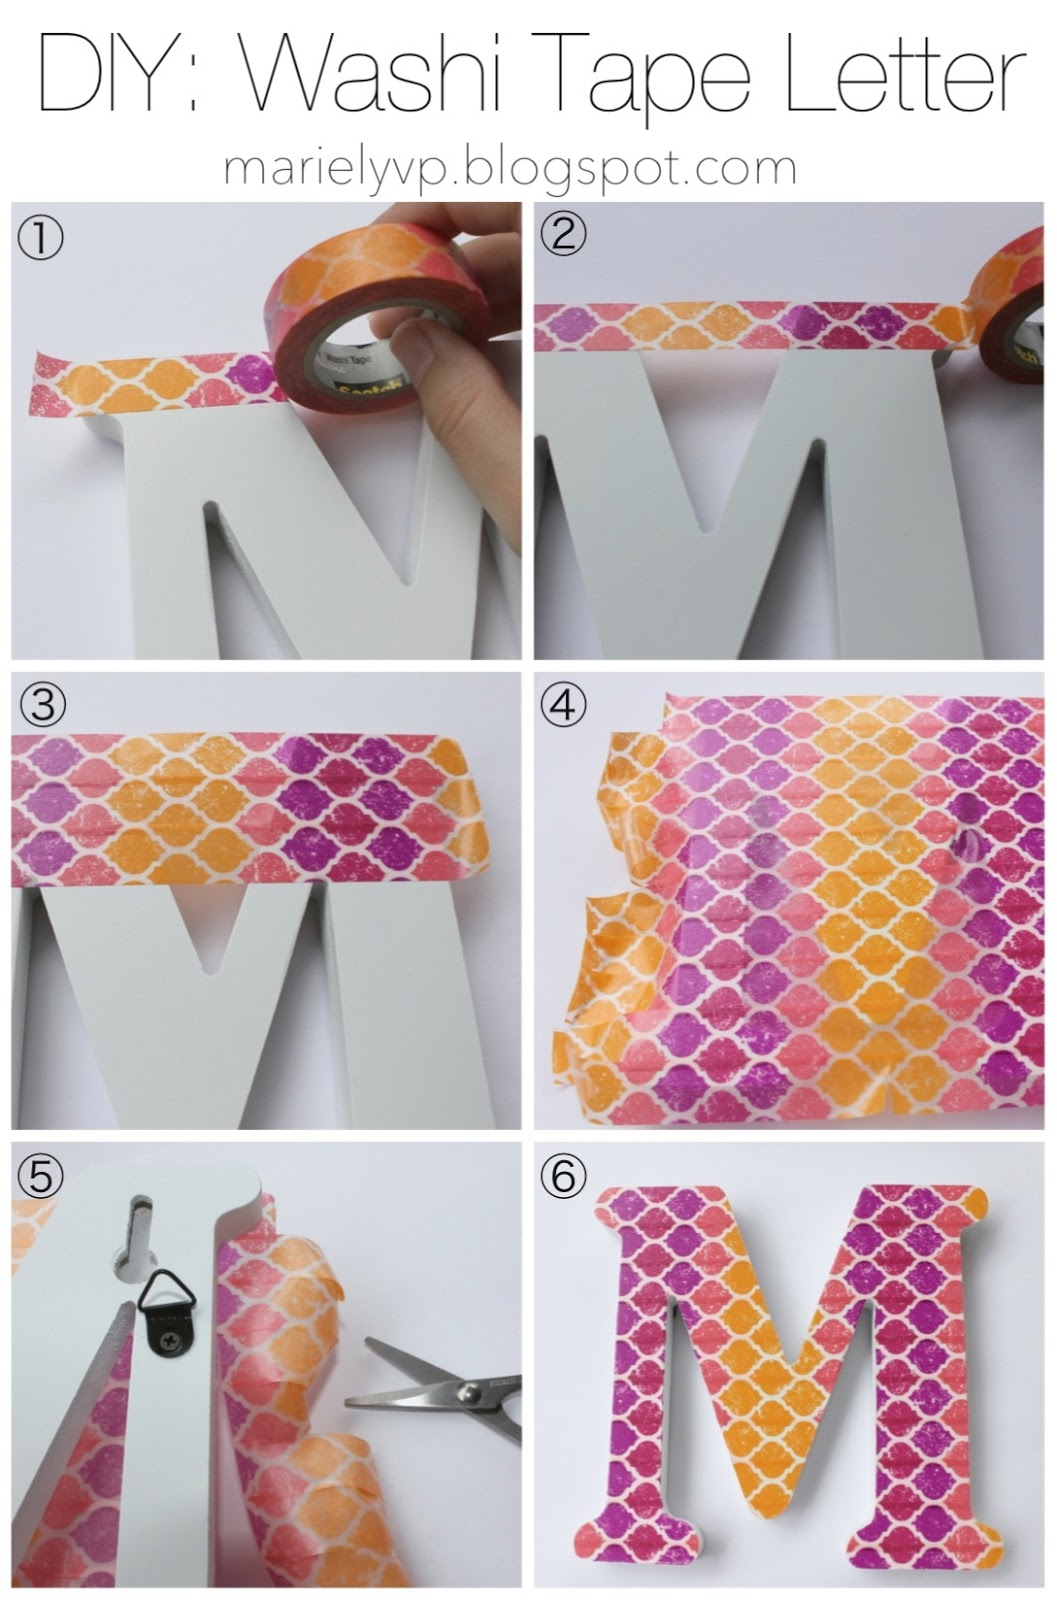 Washi Tape Diy We Read Diy Washi Tape Letter And Key Covers